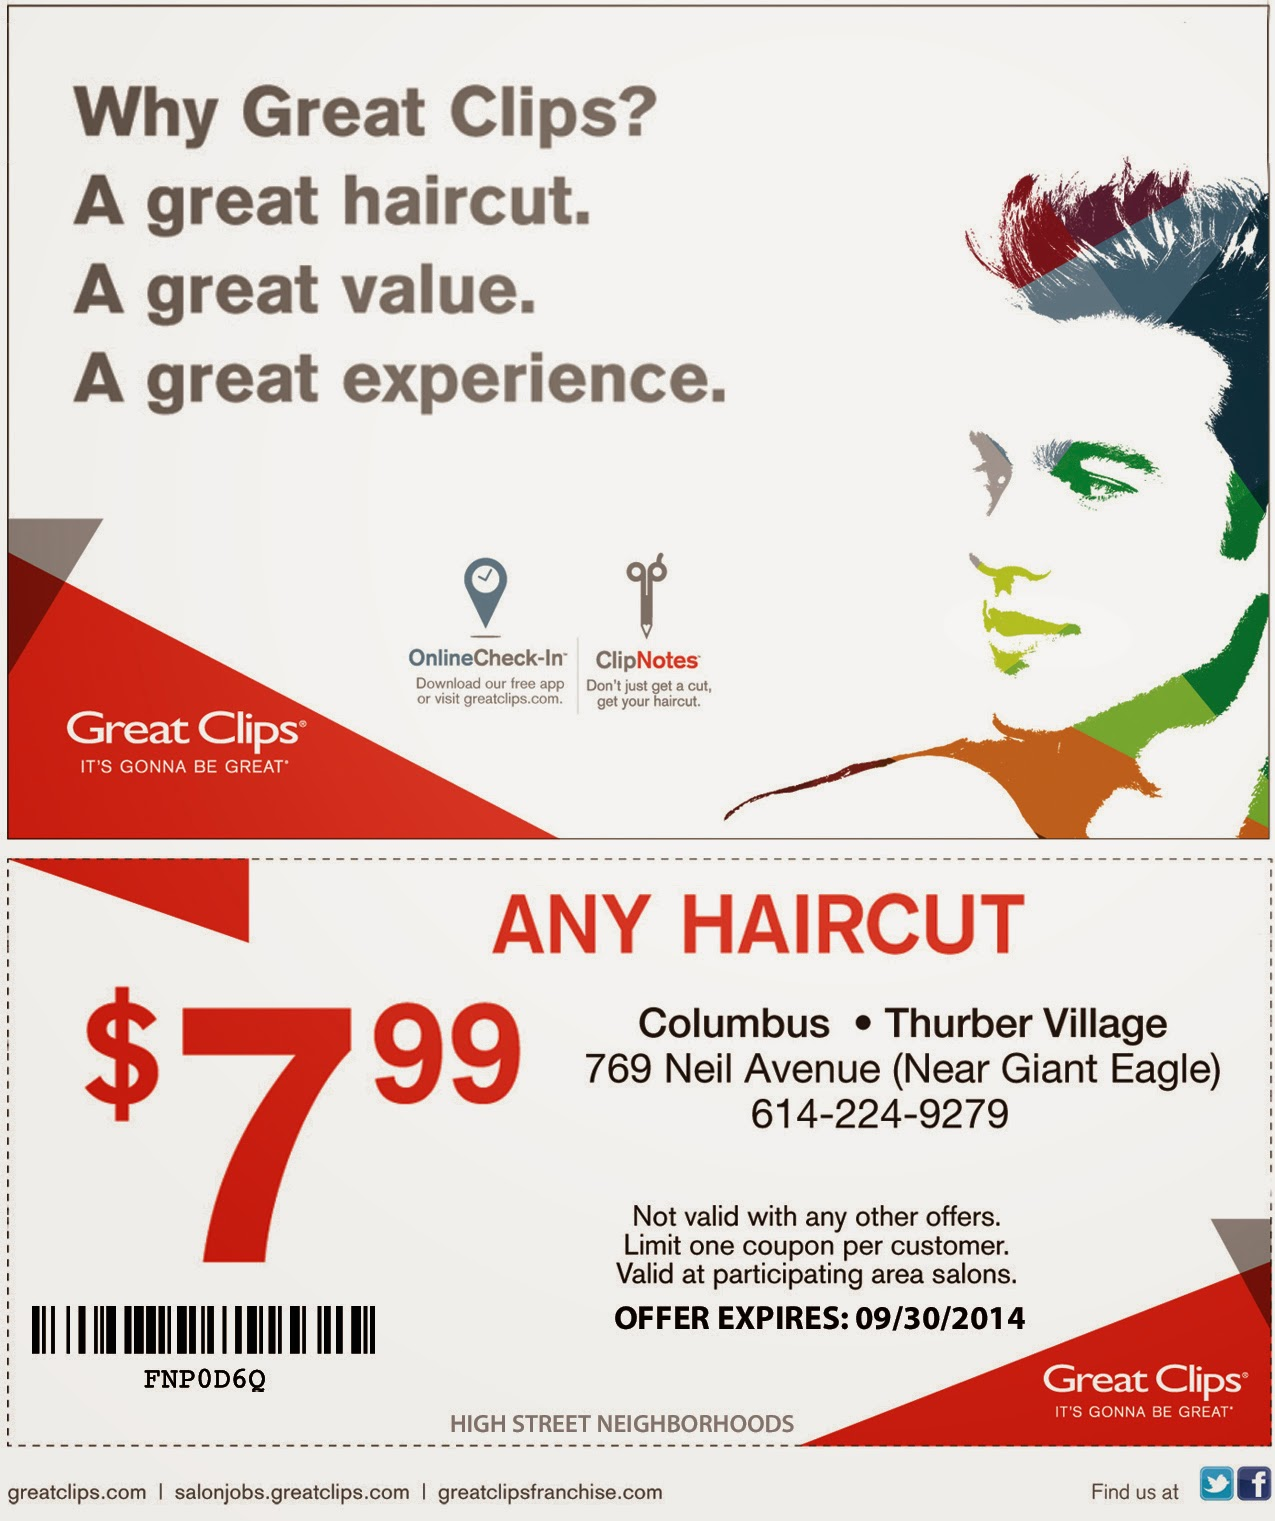 Great Clips Coupons July 2018 Printable Ocean City Md Hotels Best